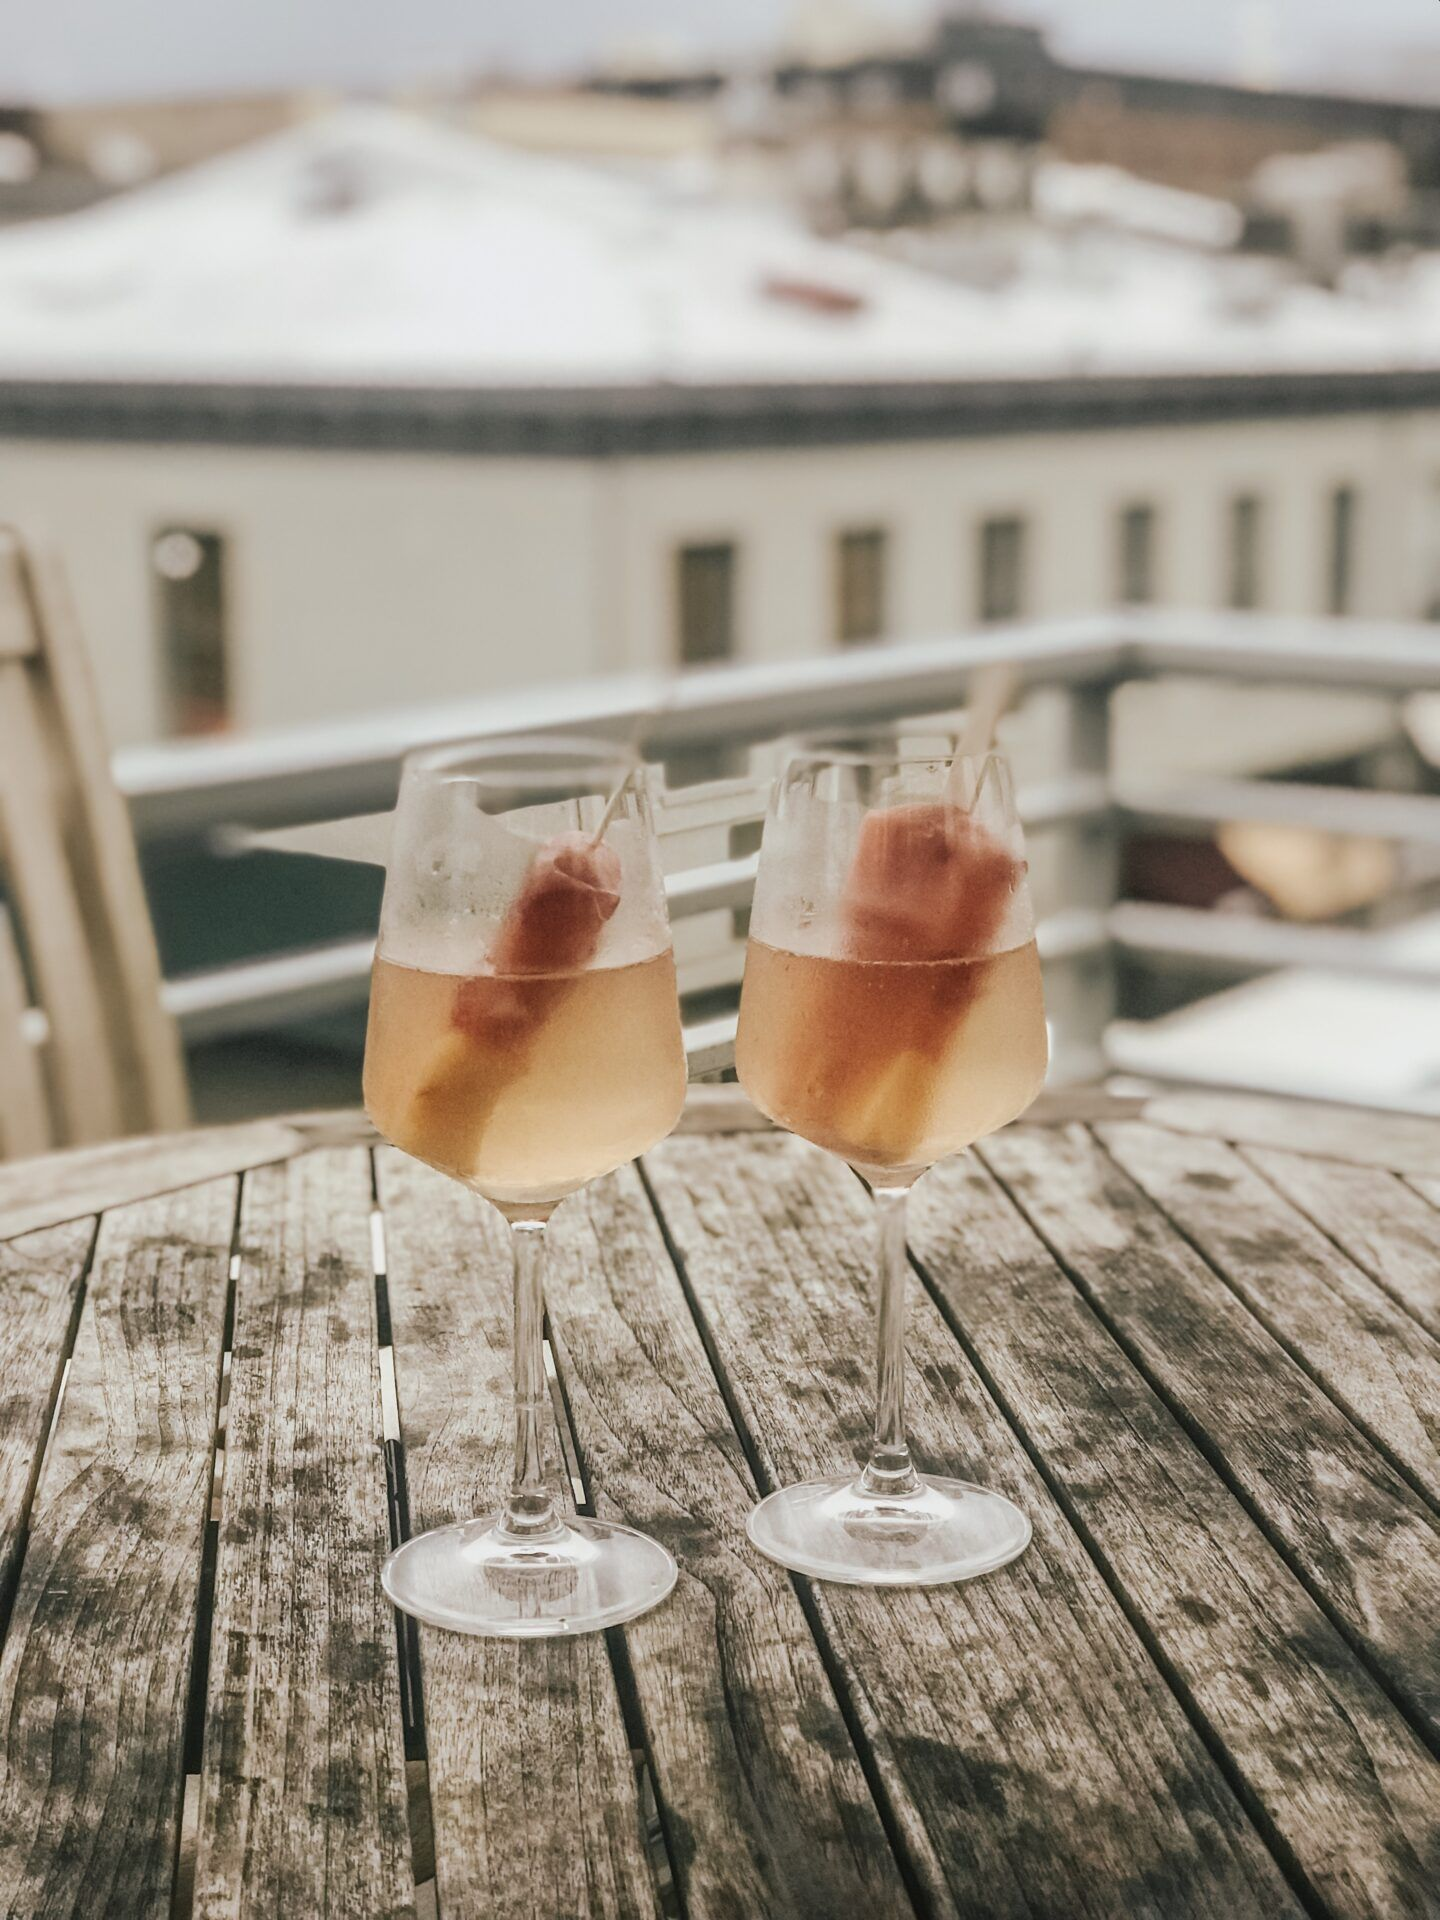 Best Rooftop Bars in Savannah #champagnepopsicles Best Rooftop Bars in Savannah,  The Grove Savannah, Savannah Travel, things to do in Savannah, best bars in Savannah, Savannah bars, Savannah things to do, Savannah rooftop bars, Savannah bachelorette party, Savannah bachelorette weekend, champagne popsicles, prosecco popsicles #champagnepopsicles